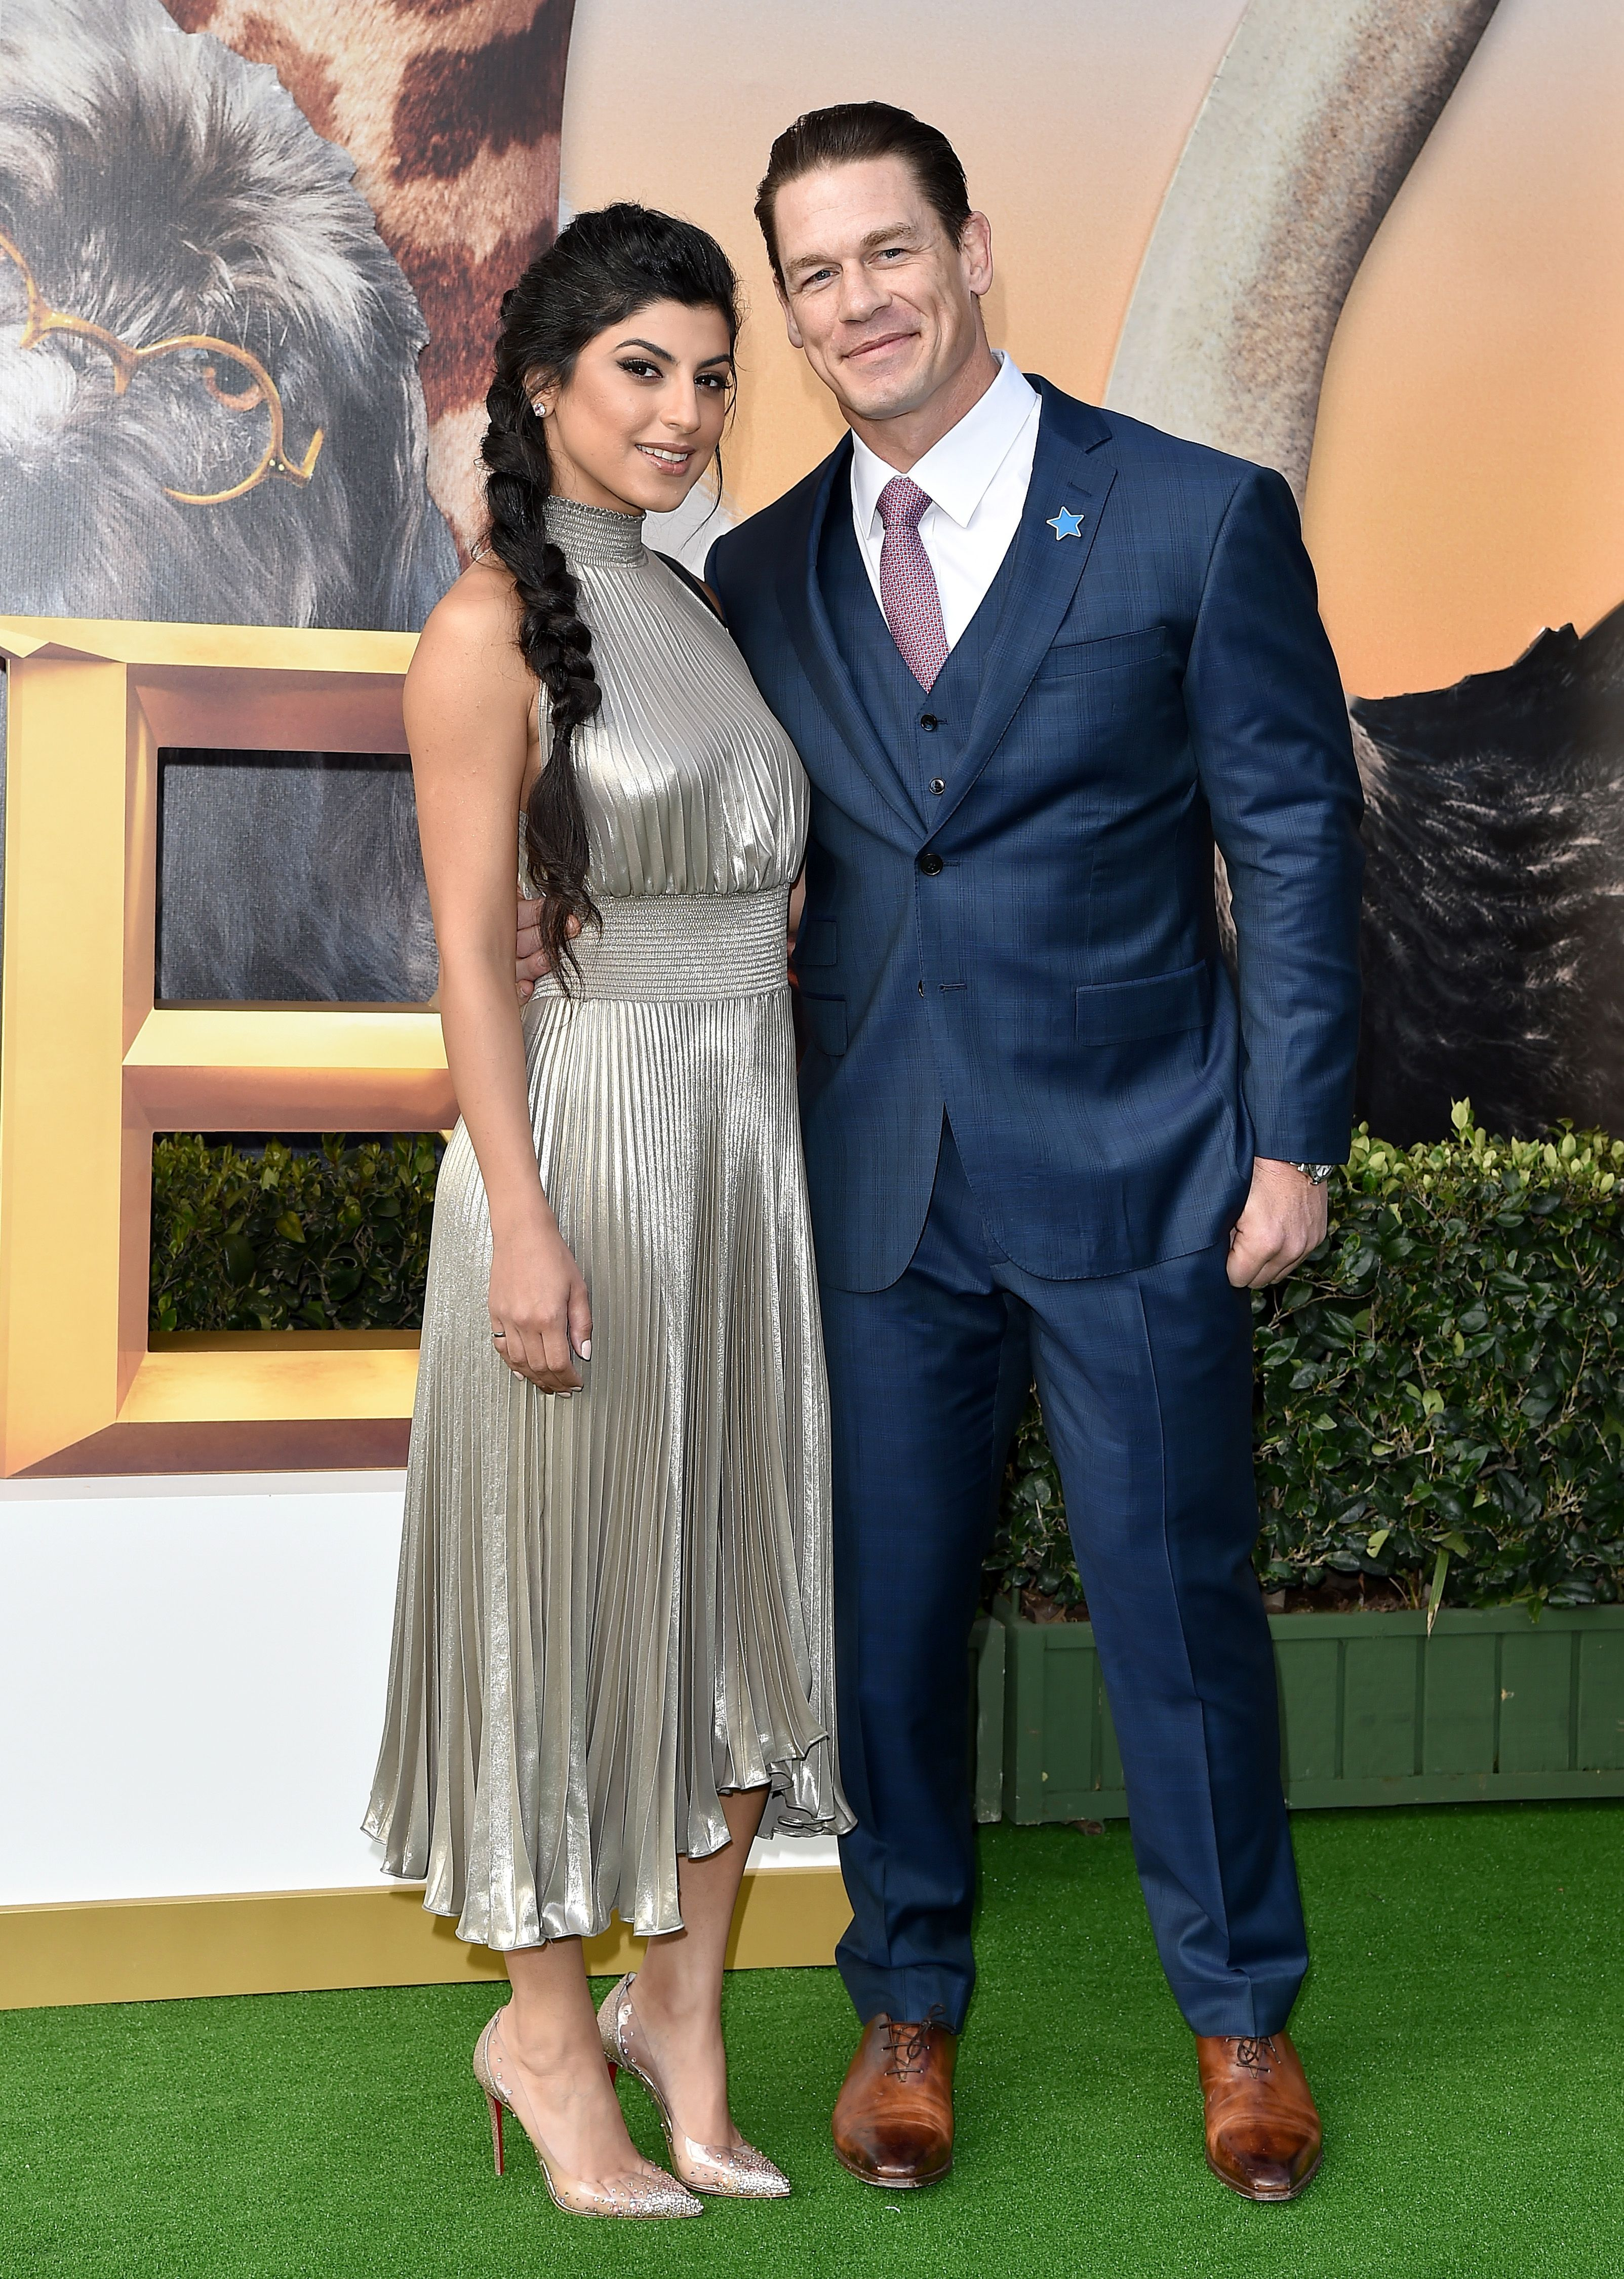 """Shay Shariatzadeh and John Cena at the premiere of Universal Pictures' """"Dolittle"""" at Regency Village Theatre on January 11, 2020 